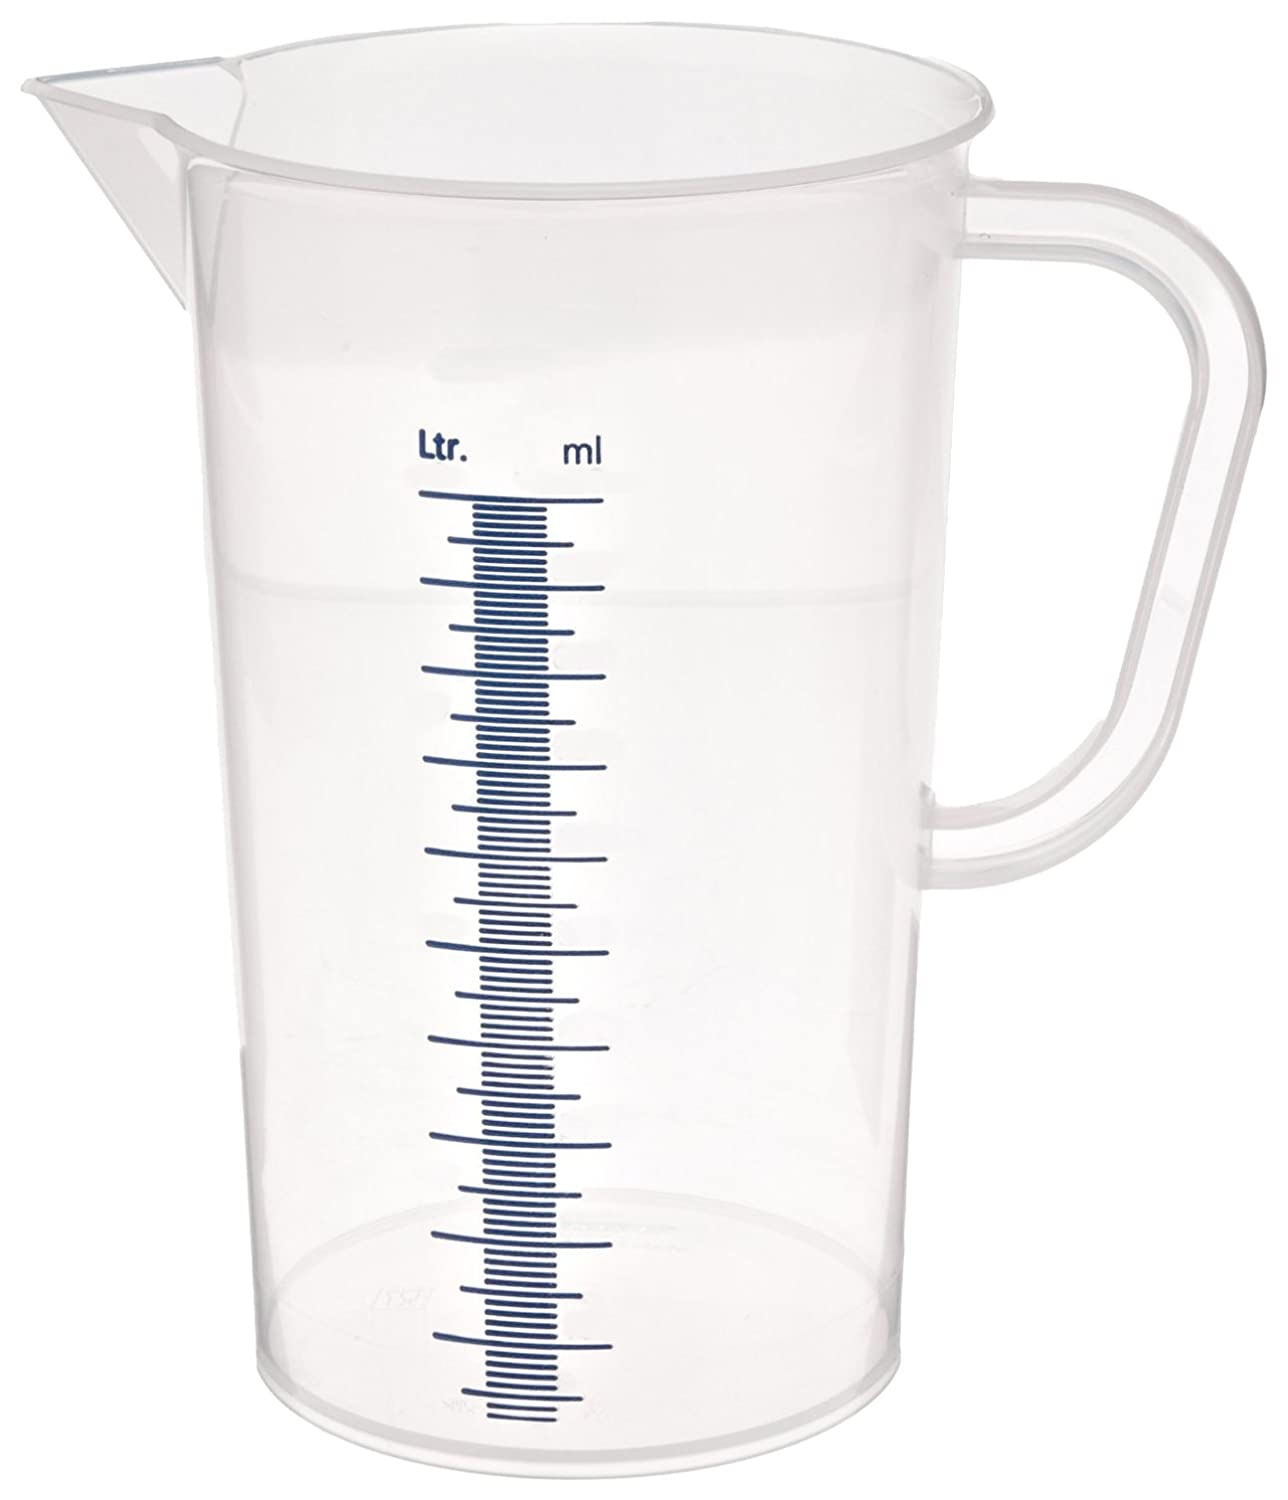 5000mL Capacity Pack of 6 Vitlab Polypropylene Graduated Pitcher with Blue Molded Graduations